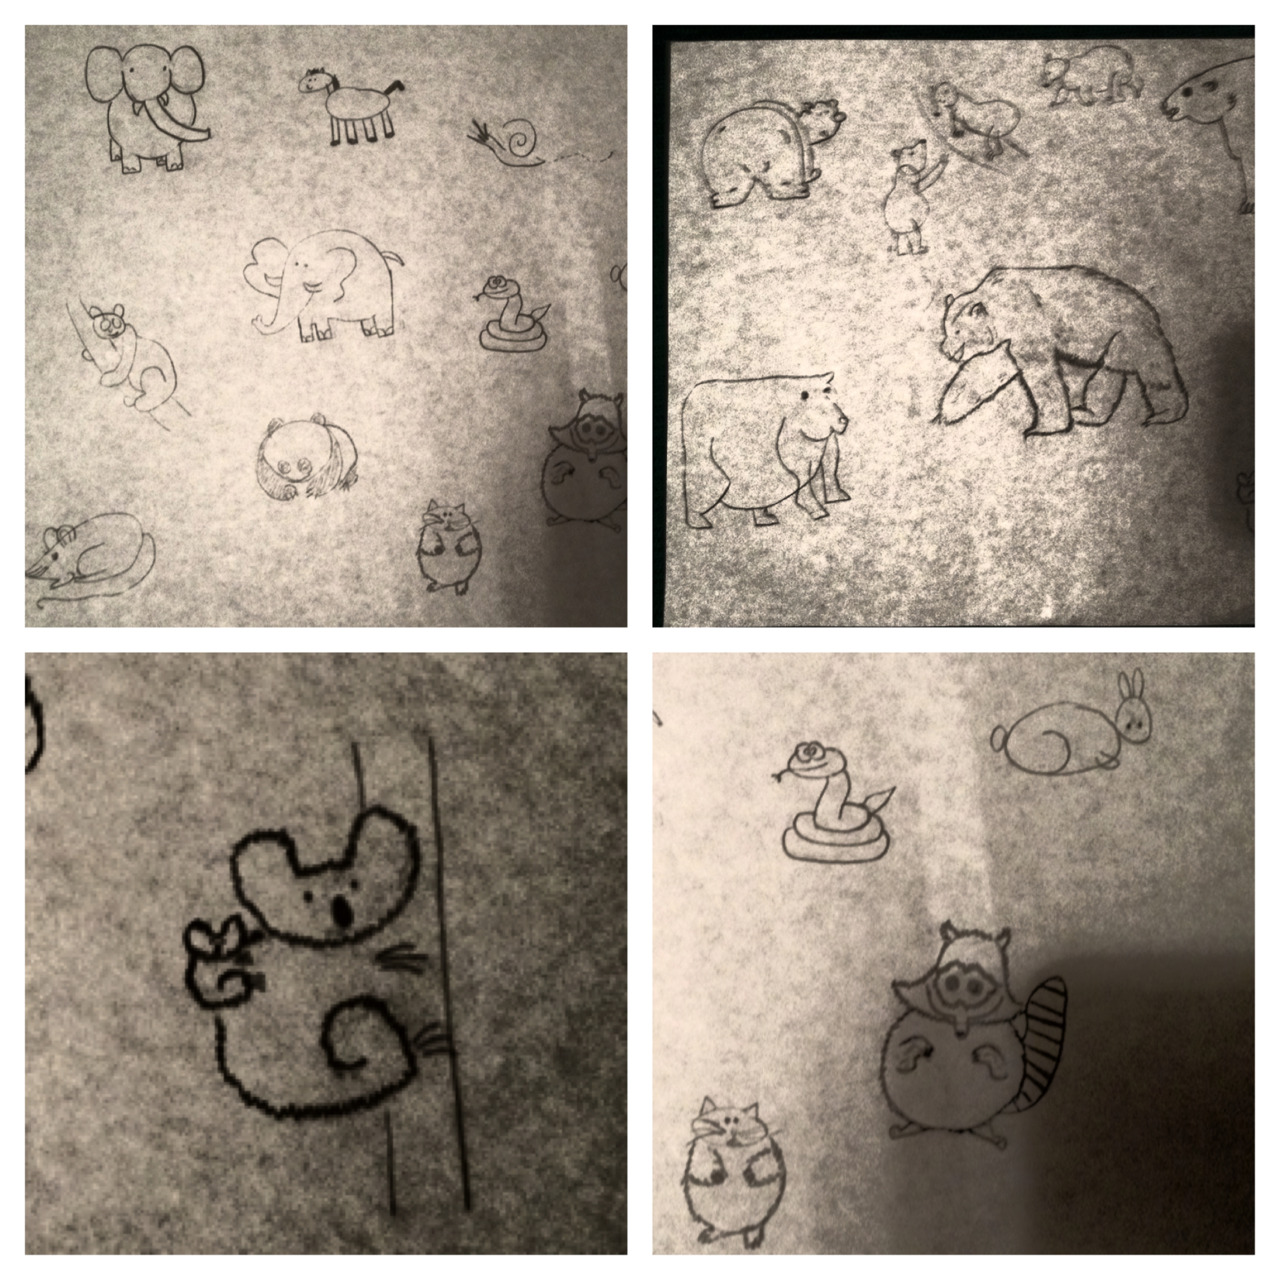 my drawings :) #notanartist #lovebears #hopeyoulikeit